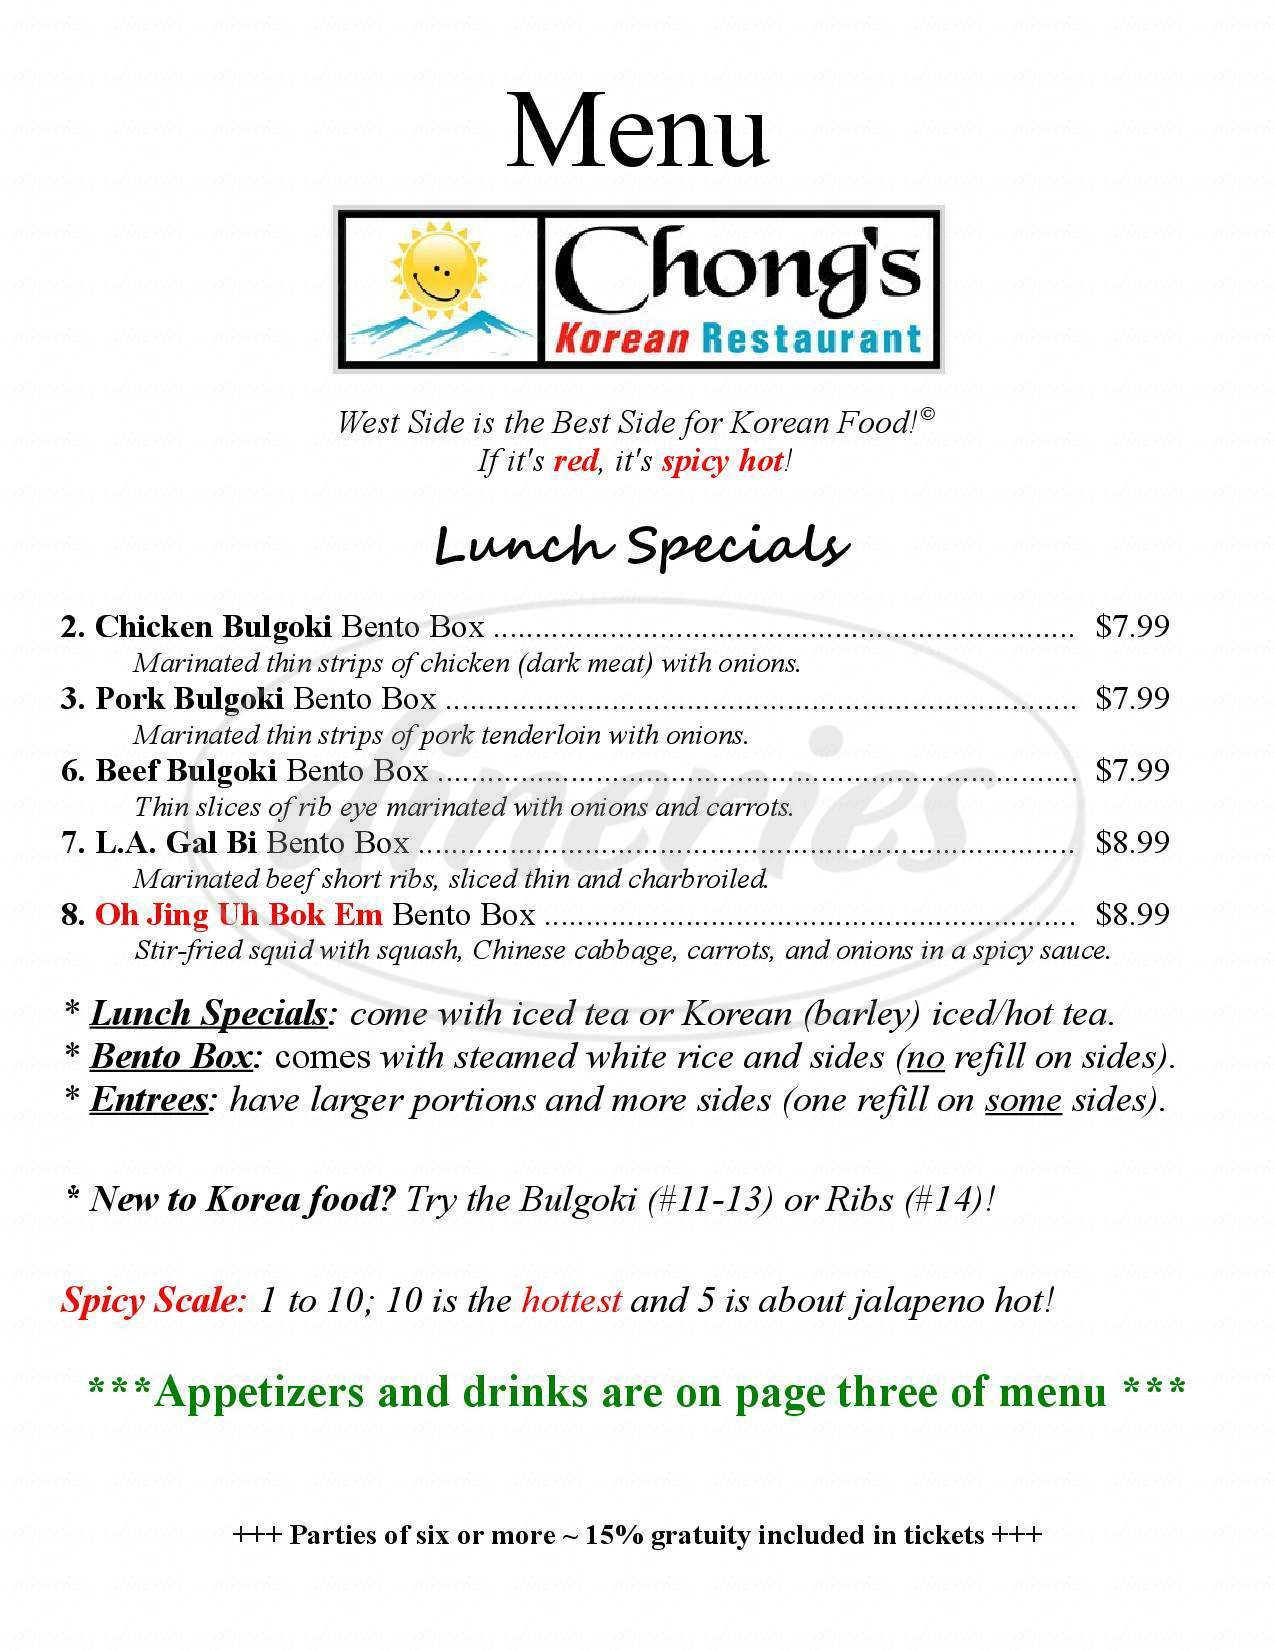 menu for Chong's Korean Restaurant